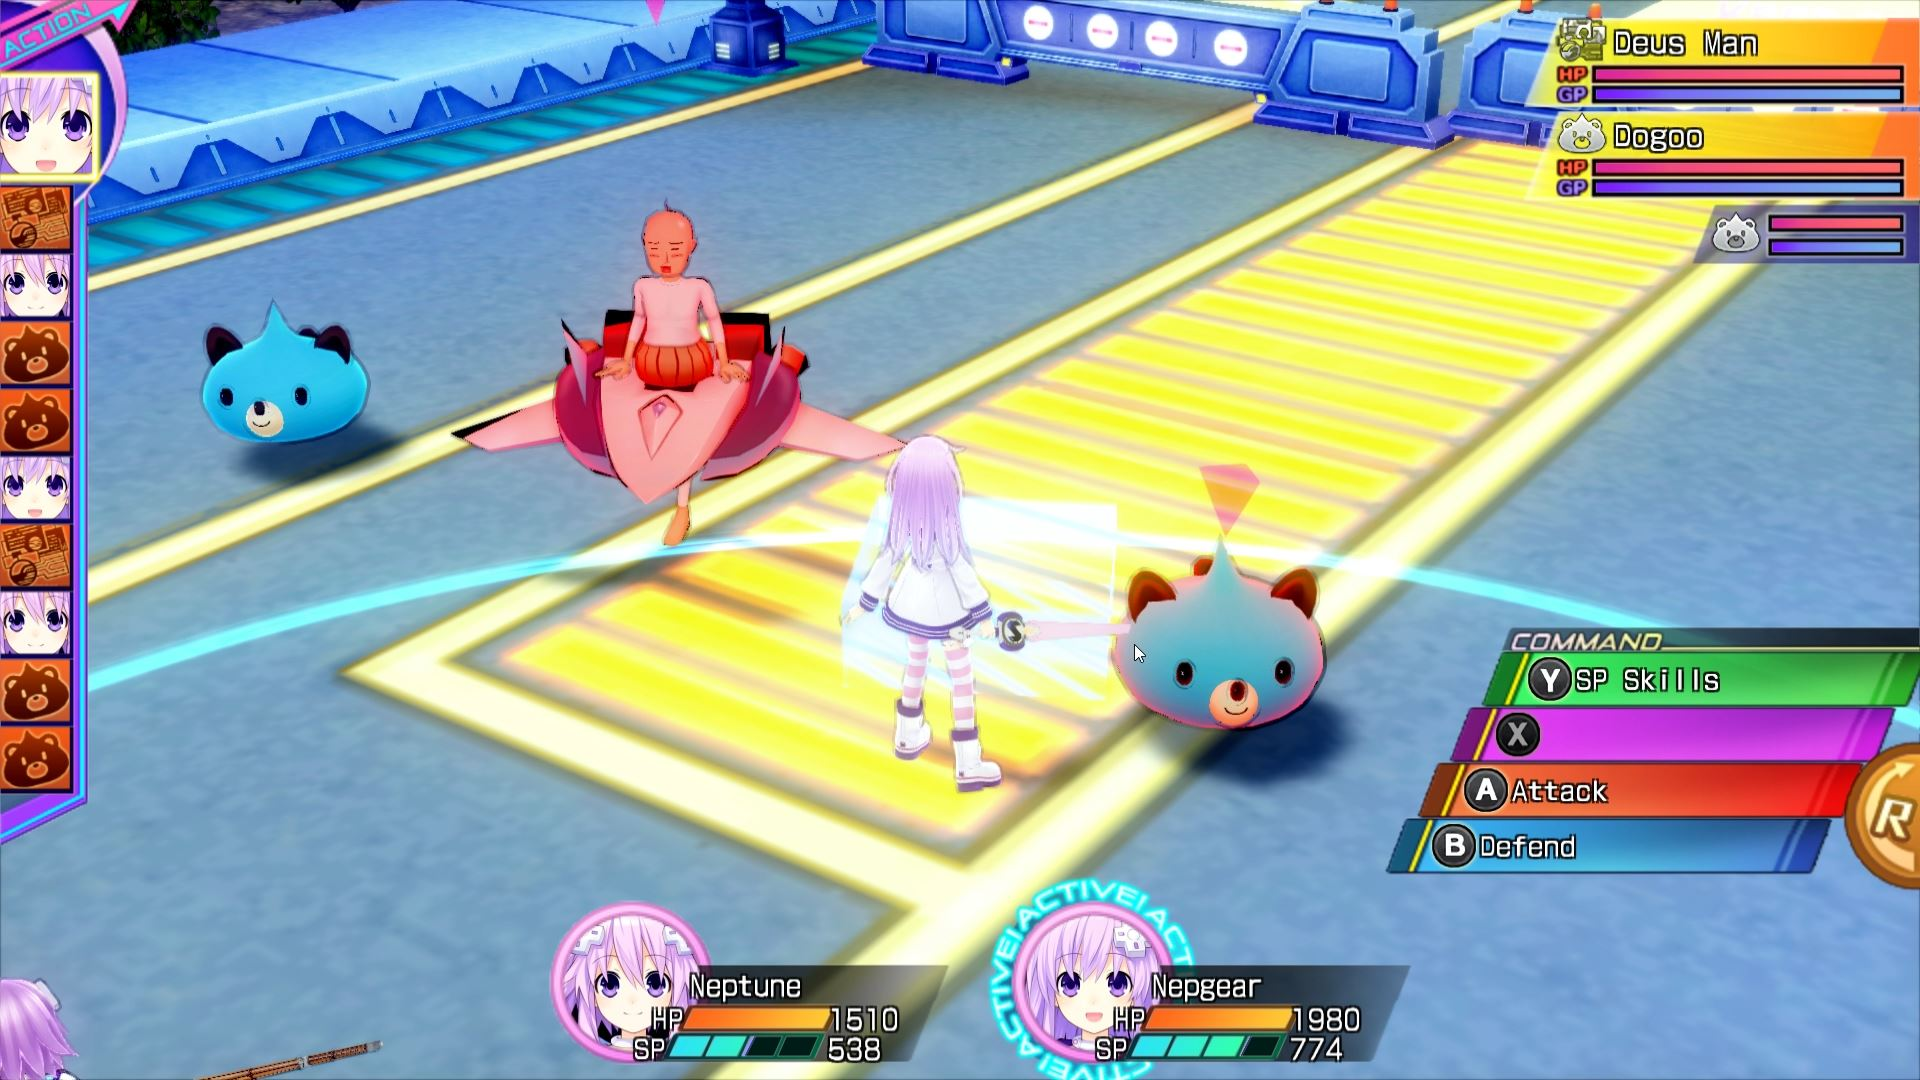 Hyperdimension Neptunia Re;Birth3 Review - Monsters roam the streets of Planeptune and yet people still worship Neptune as a leader.